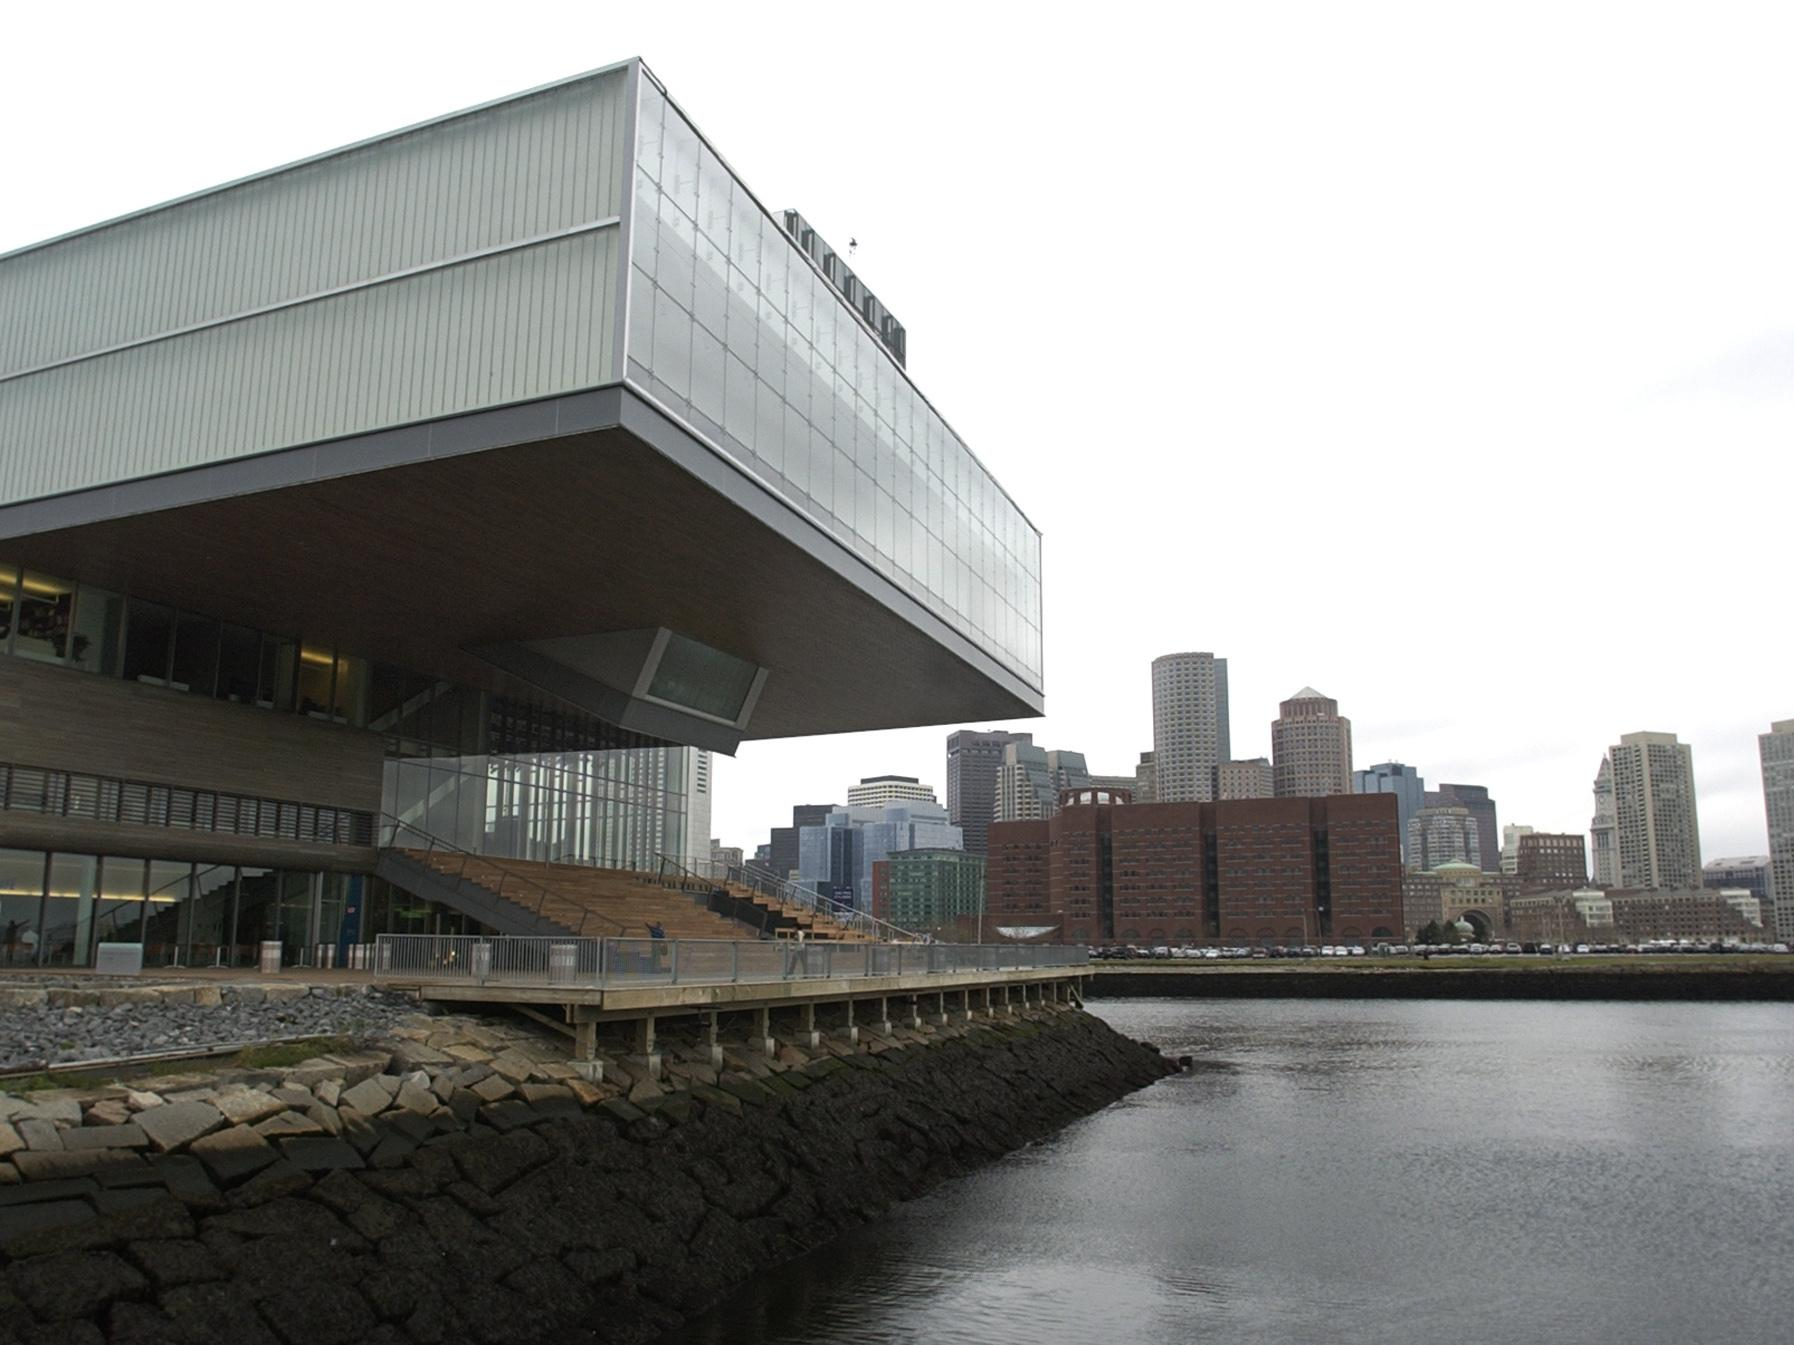 boston s museums offer free admission to provide a place of respite kuer 90 1